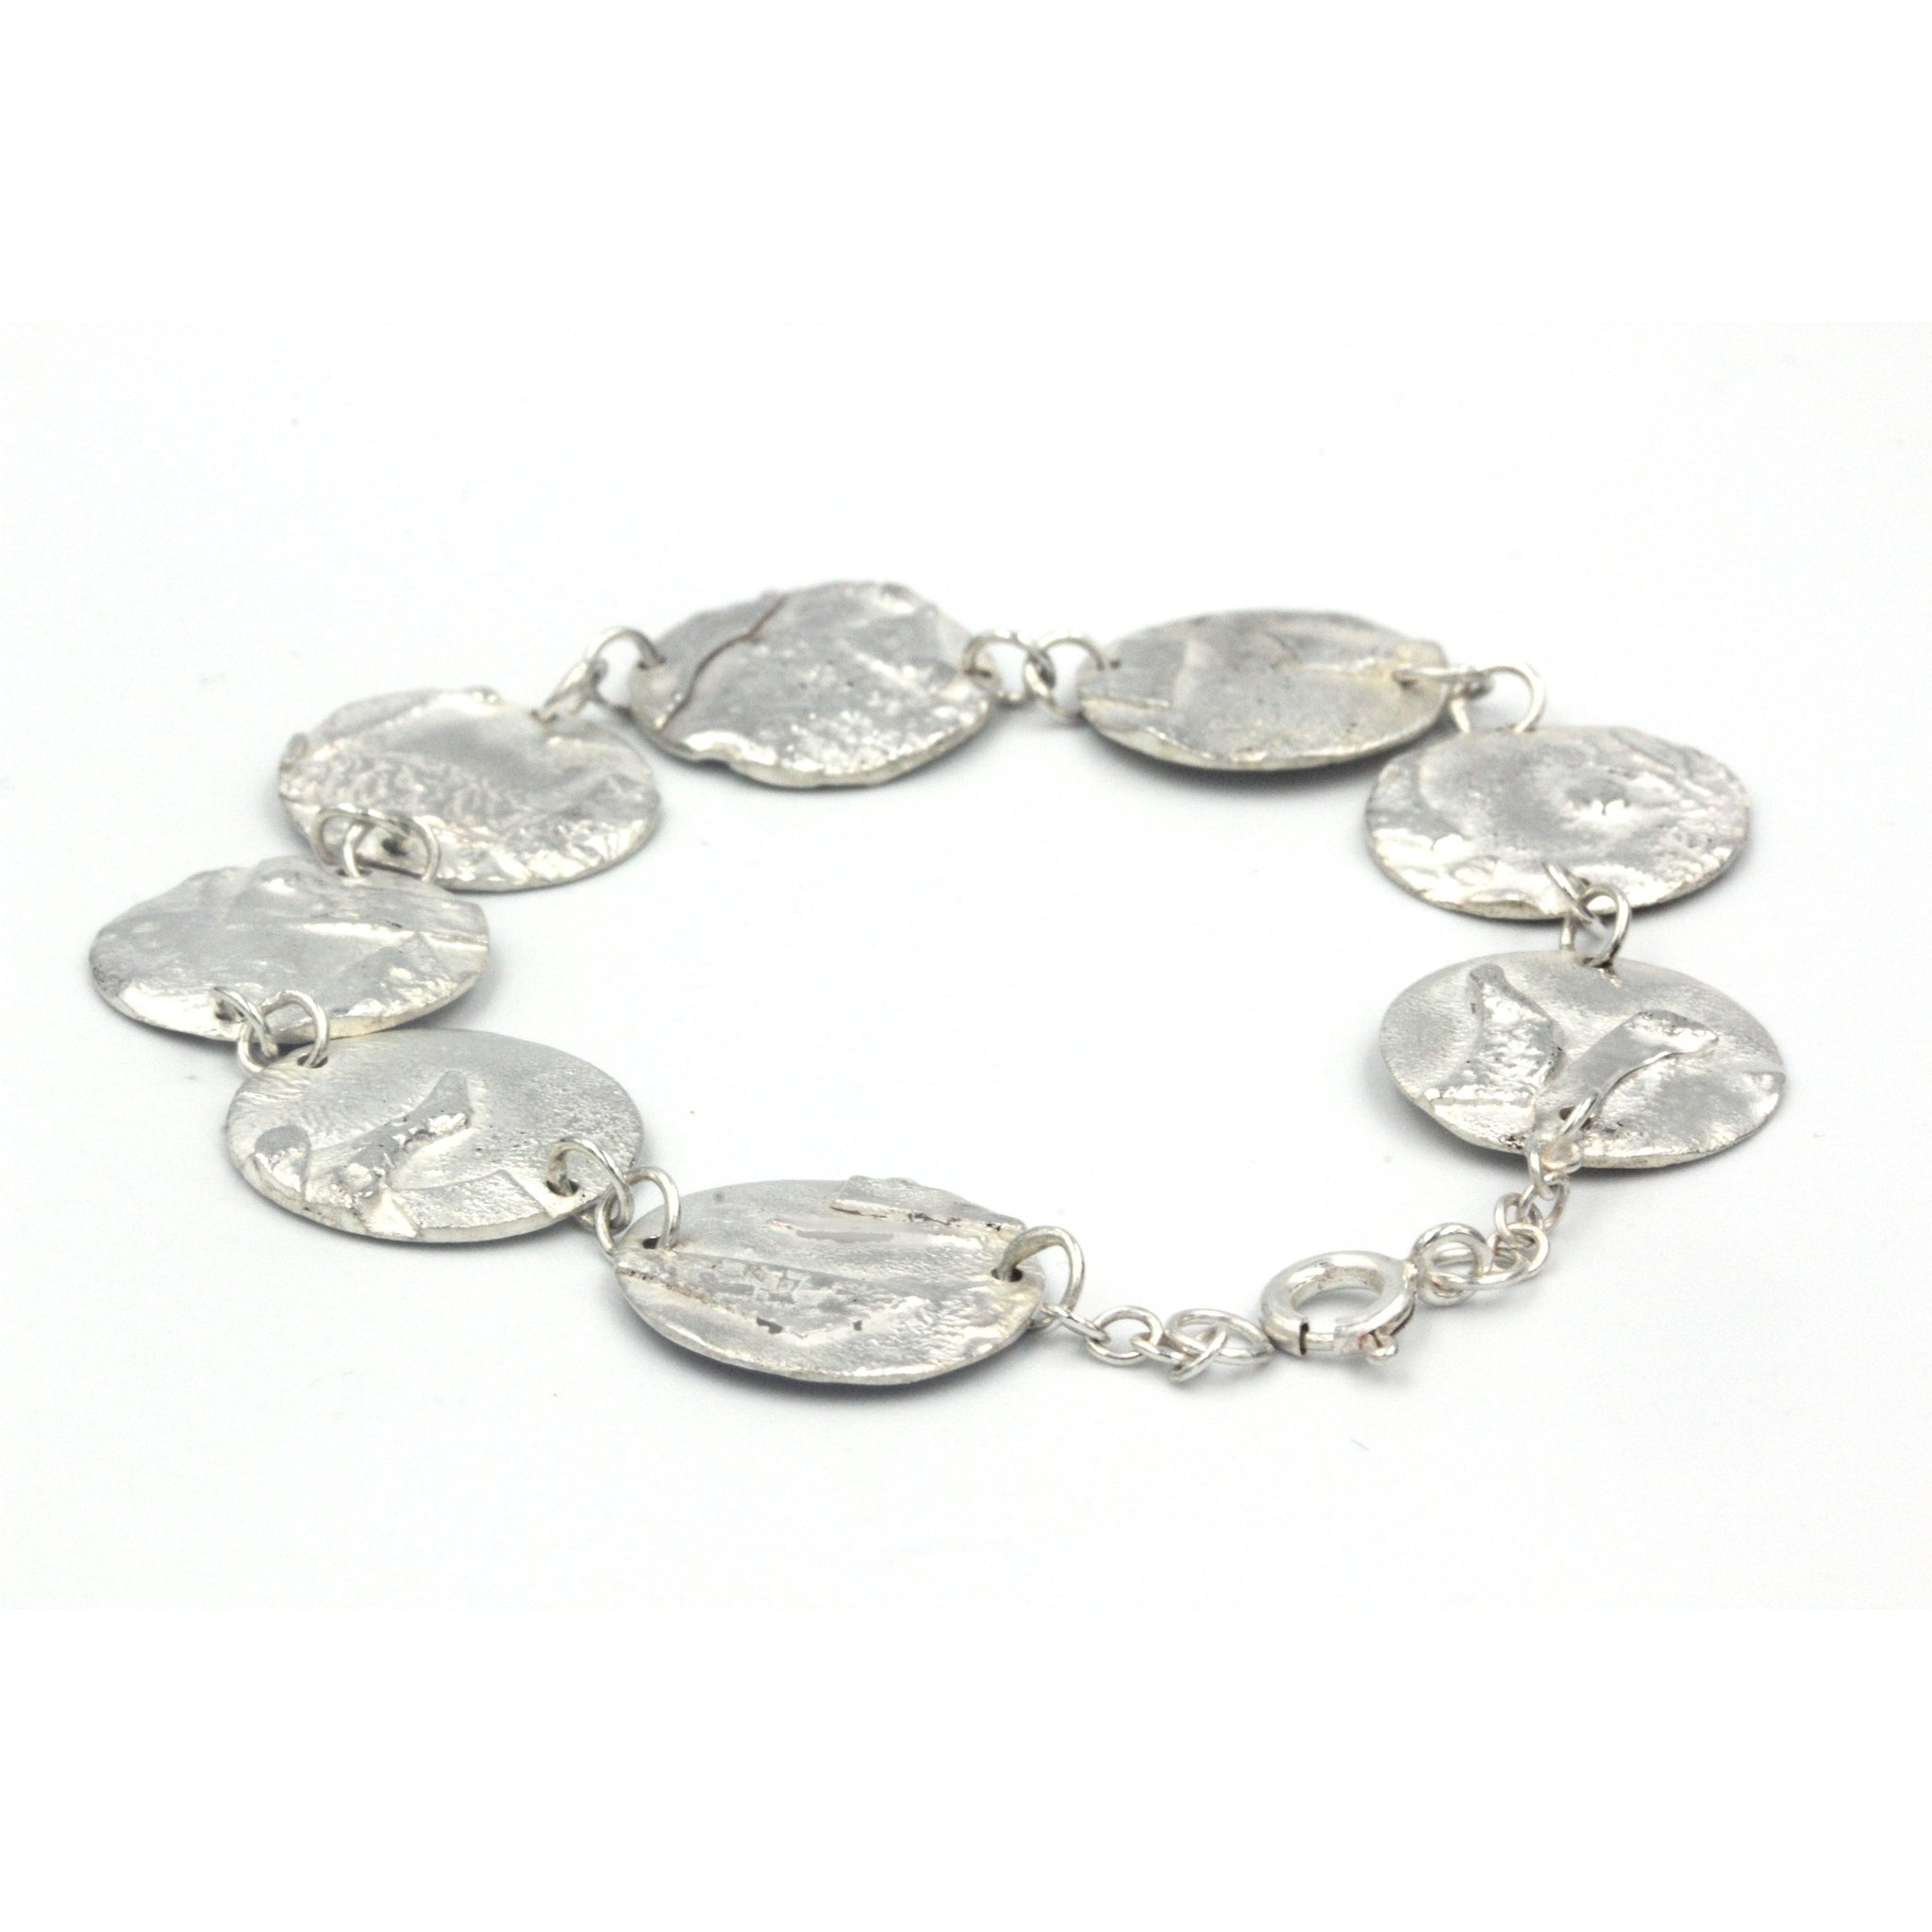 Unique 'Planets' textured bracelet, handmade in sterling silver this bracelet is inspired by the planets of our solar system and features 4 different textures.